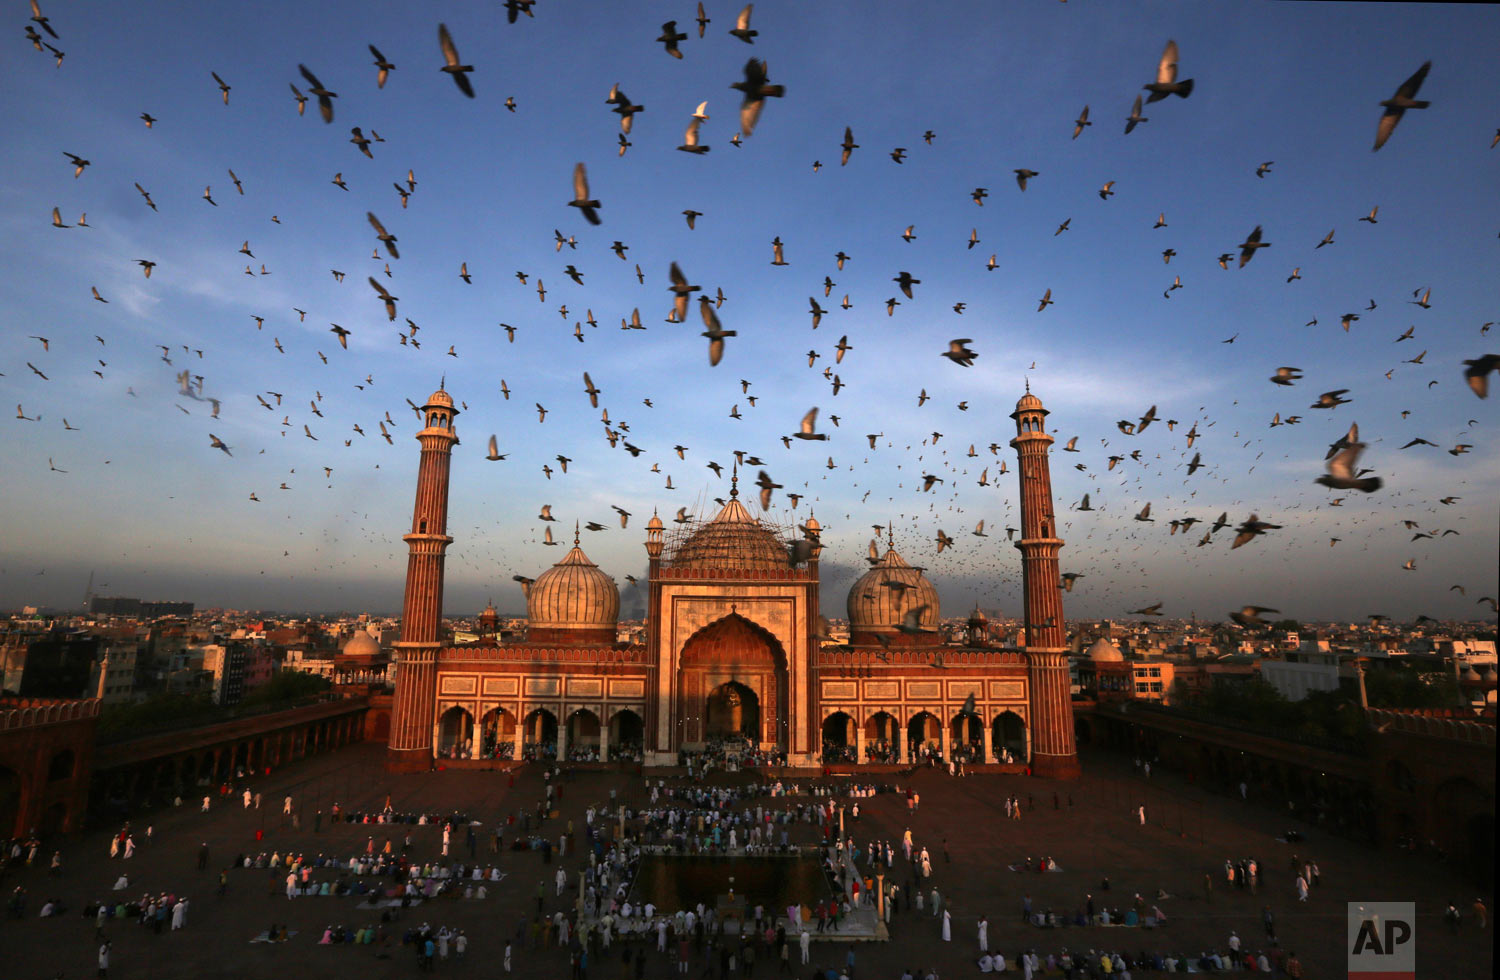 Pigeons fly past as Muslims gather to offer Eid al-Adha prayers at Jama Masjid in New Delhi, India, Wednesday, Aug. 22, 2018. (AP Photo/Manish Swarup)